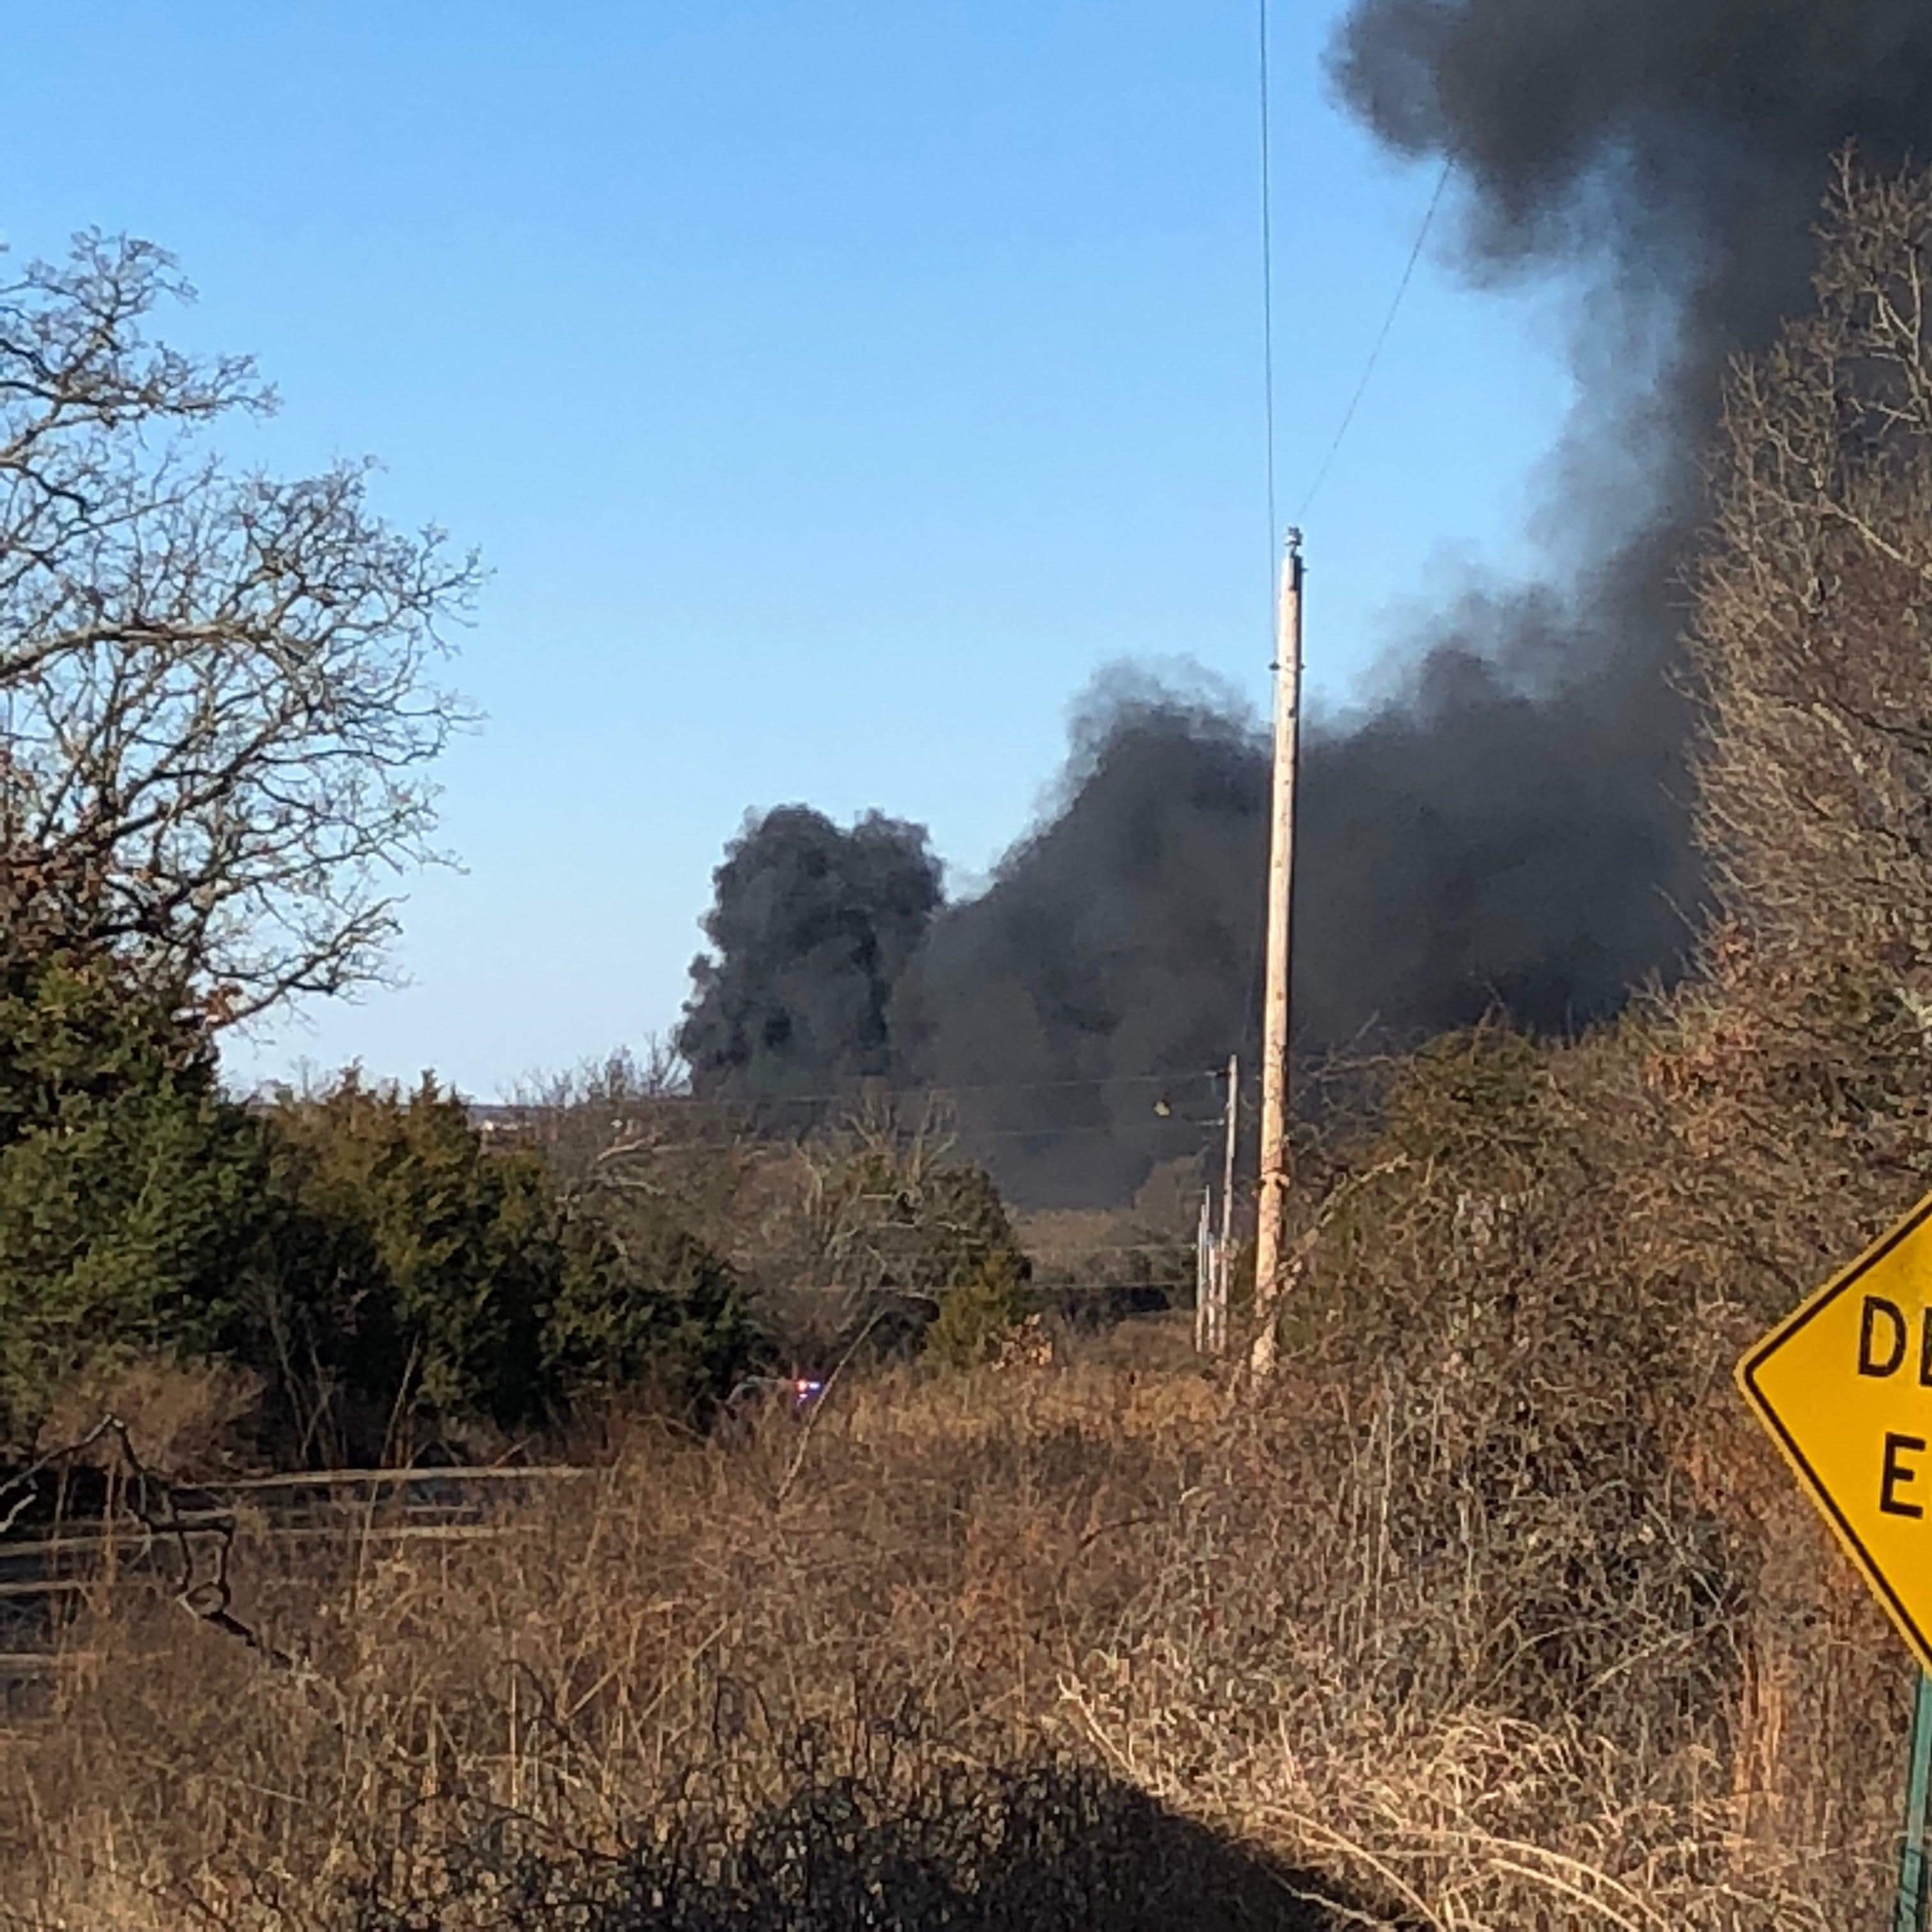 The Pittsburg County Sheriff's Office says a fire was reported near Quinton, Okla., Monday morning. Viewers say they heard and felt an explosion at the site of the rig. (Courtesy)